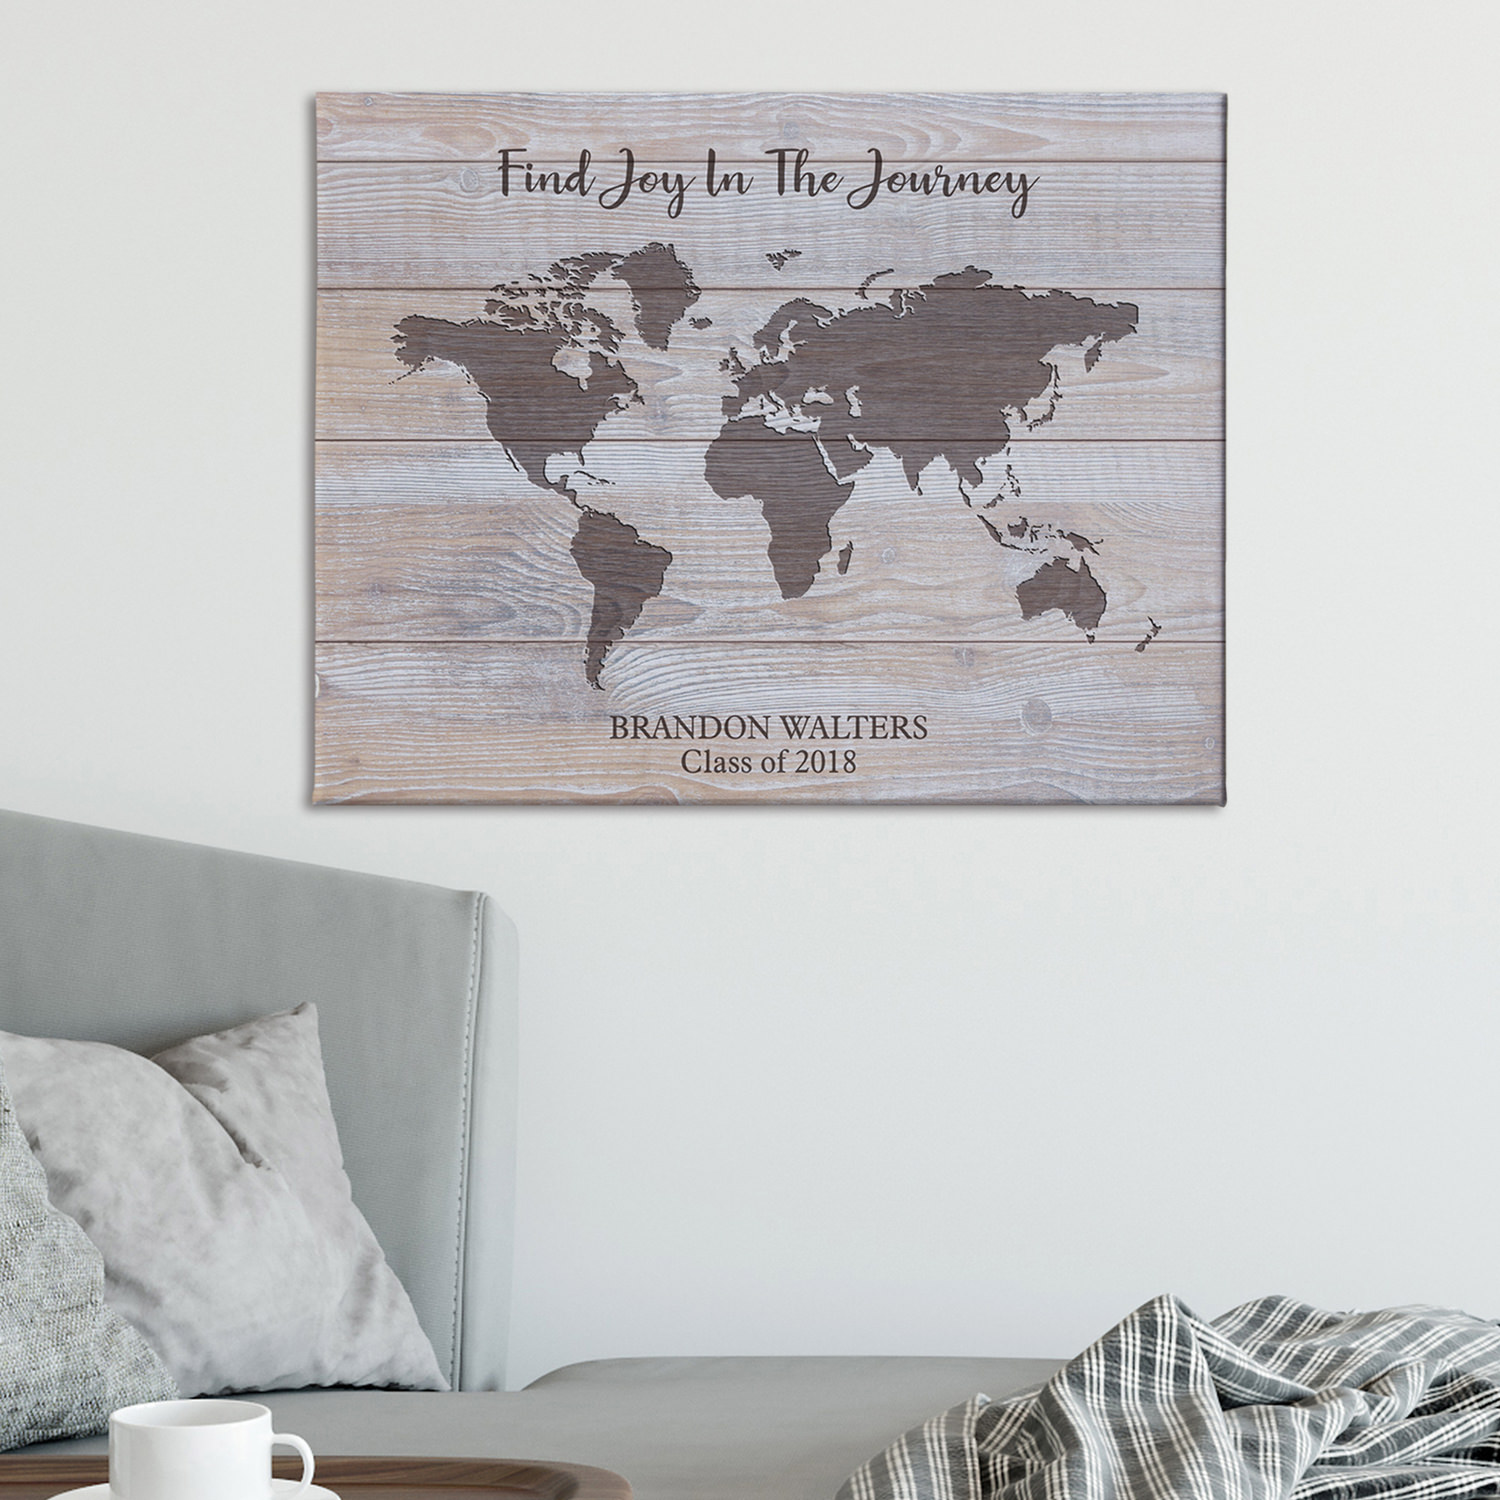 Personalized Find Joy In The Journey Canvas - Available in 3 Sizes